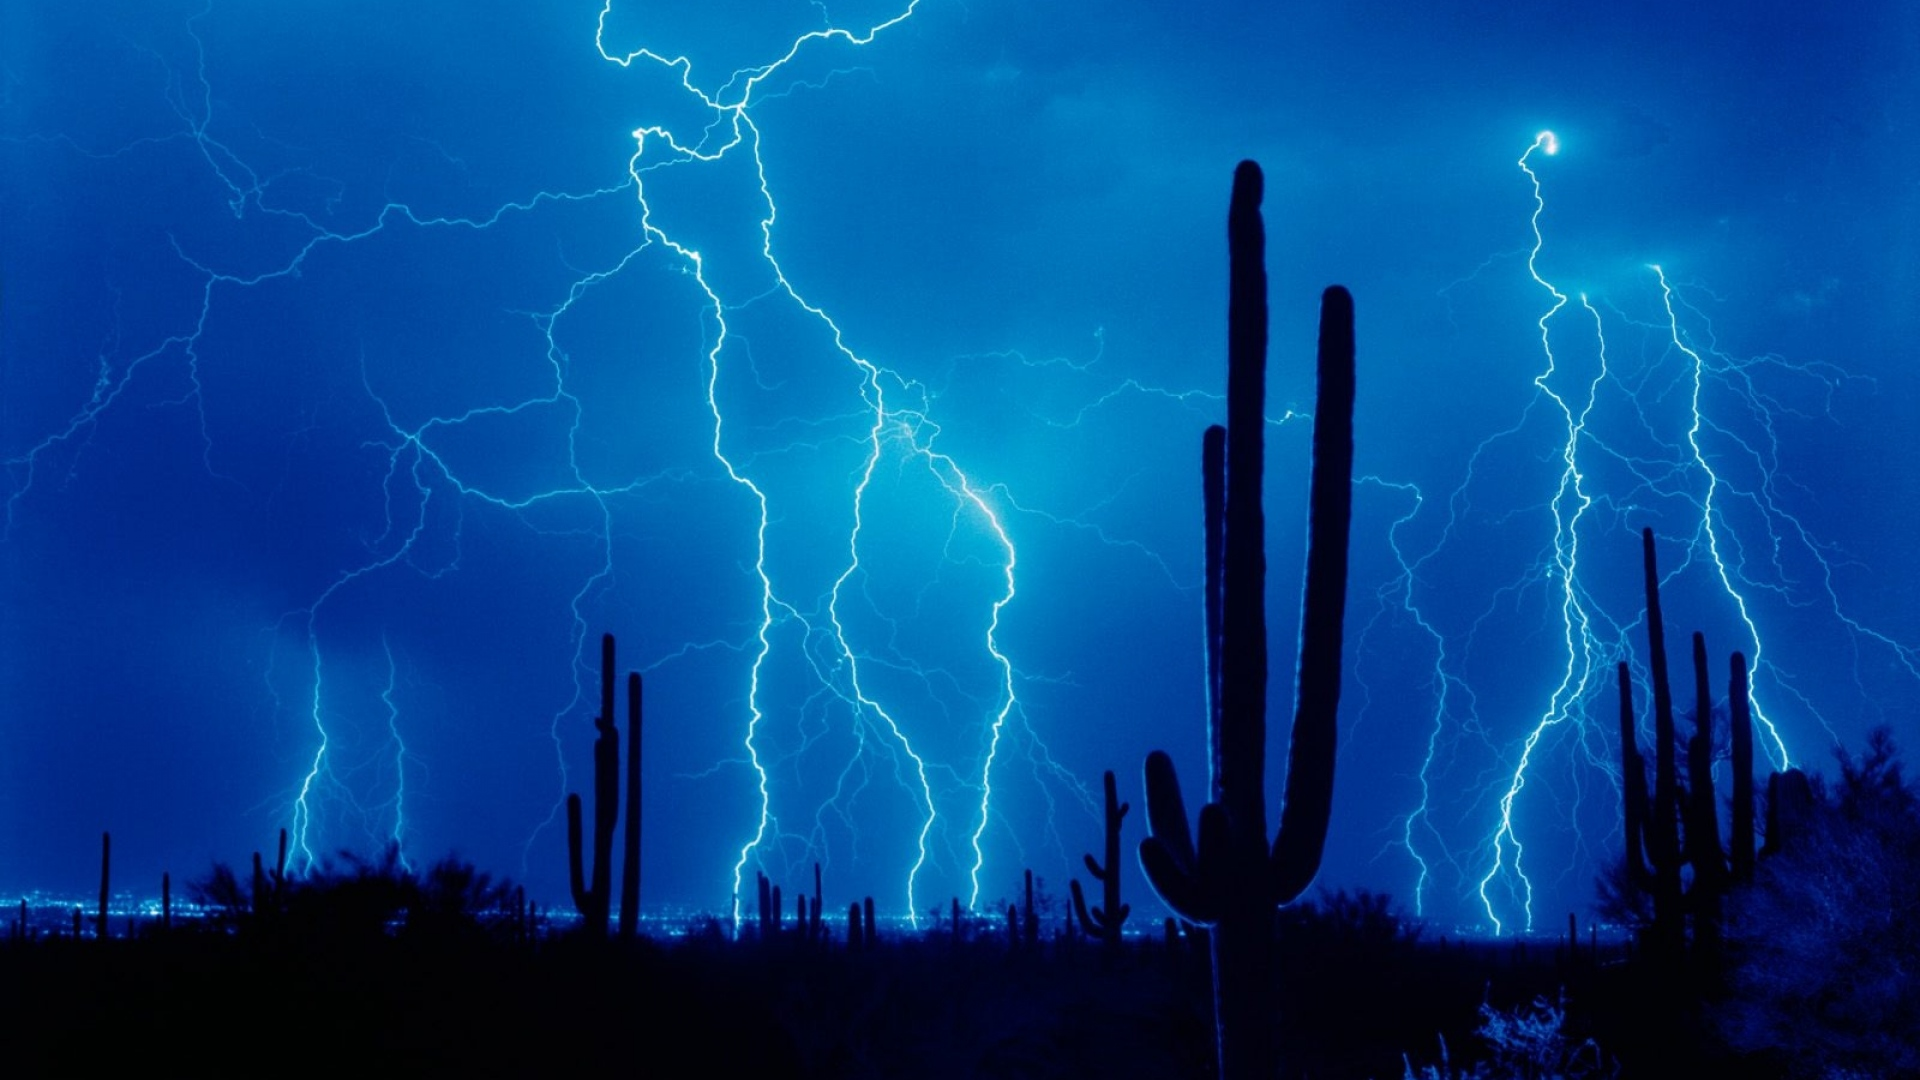 Page 2: Full HD 1080p Lightning Wallpapers HD, Desktop Backgrounds